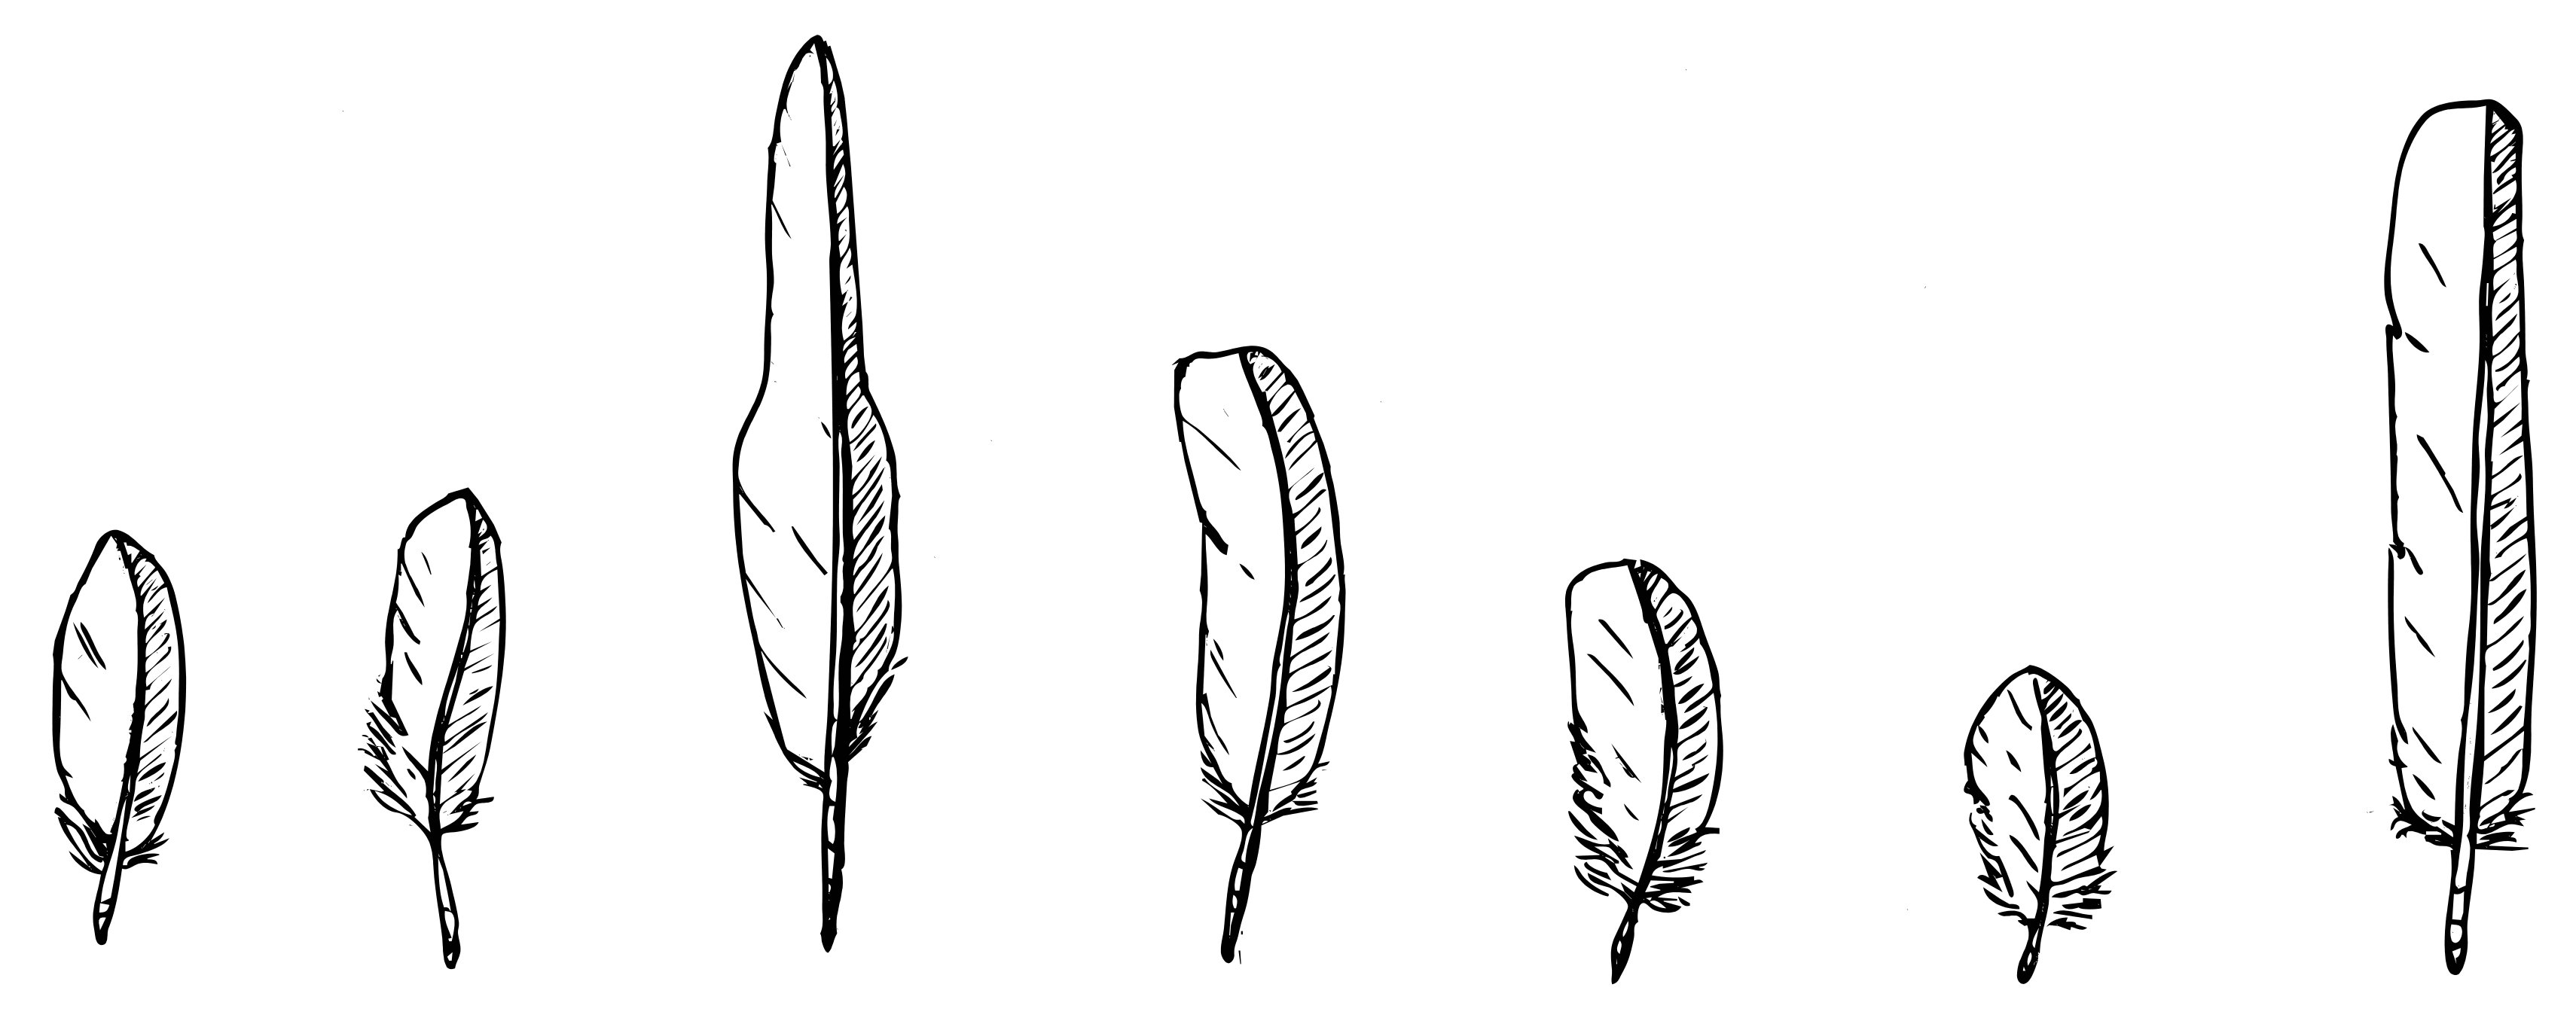 Sparrowhawk feathers